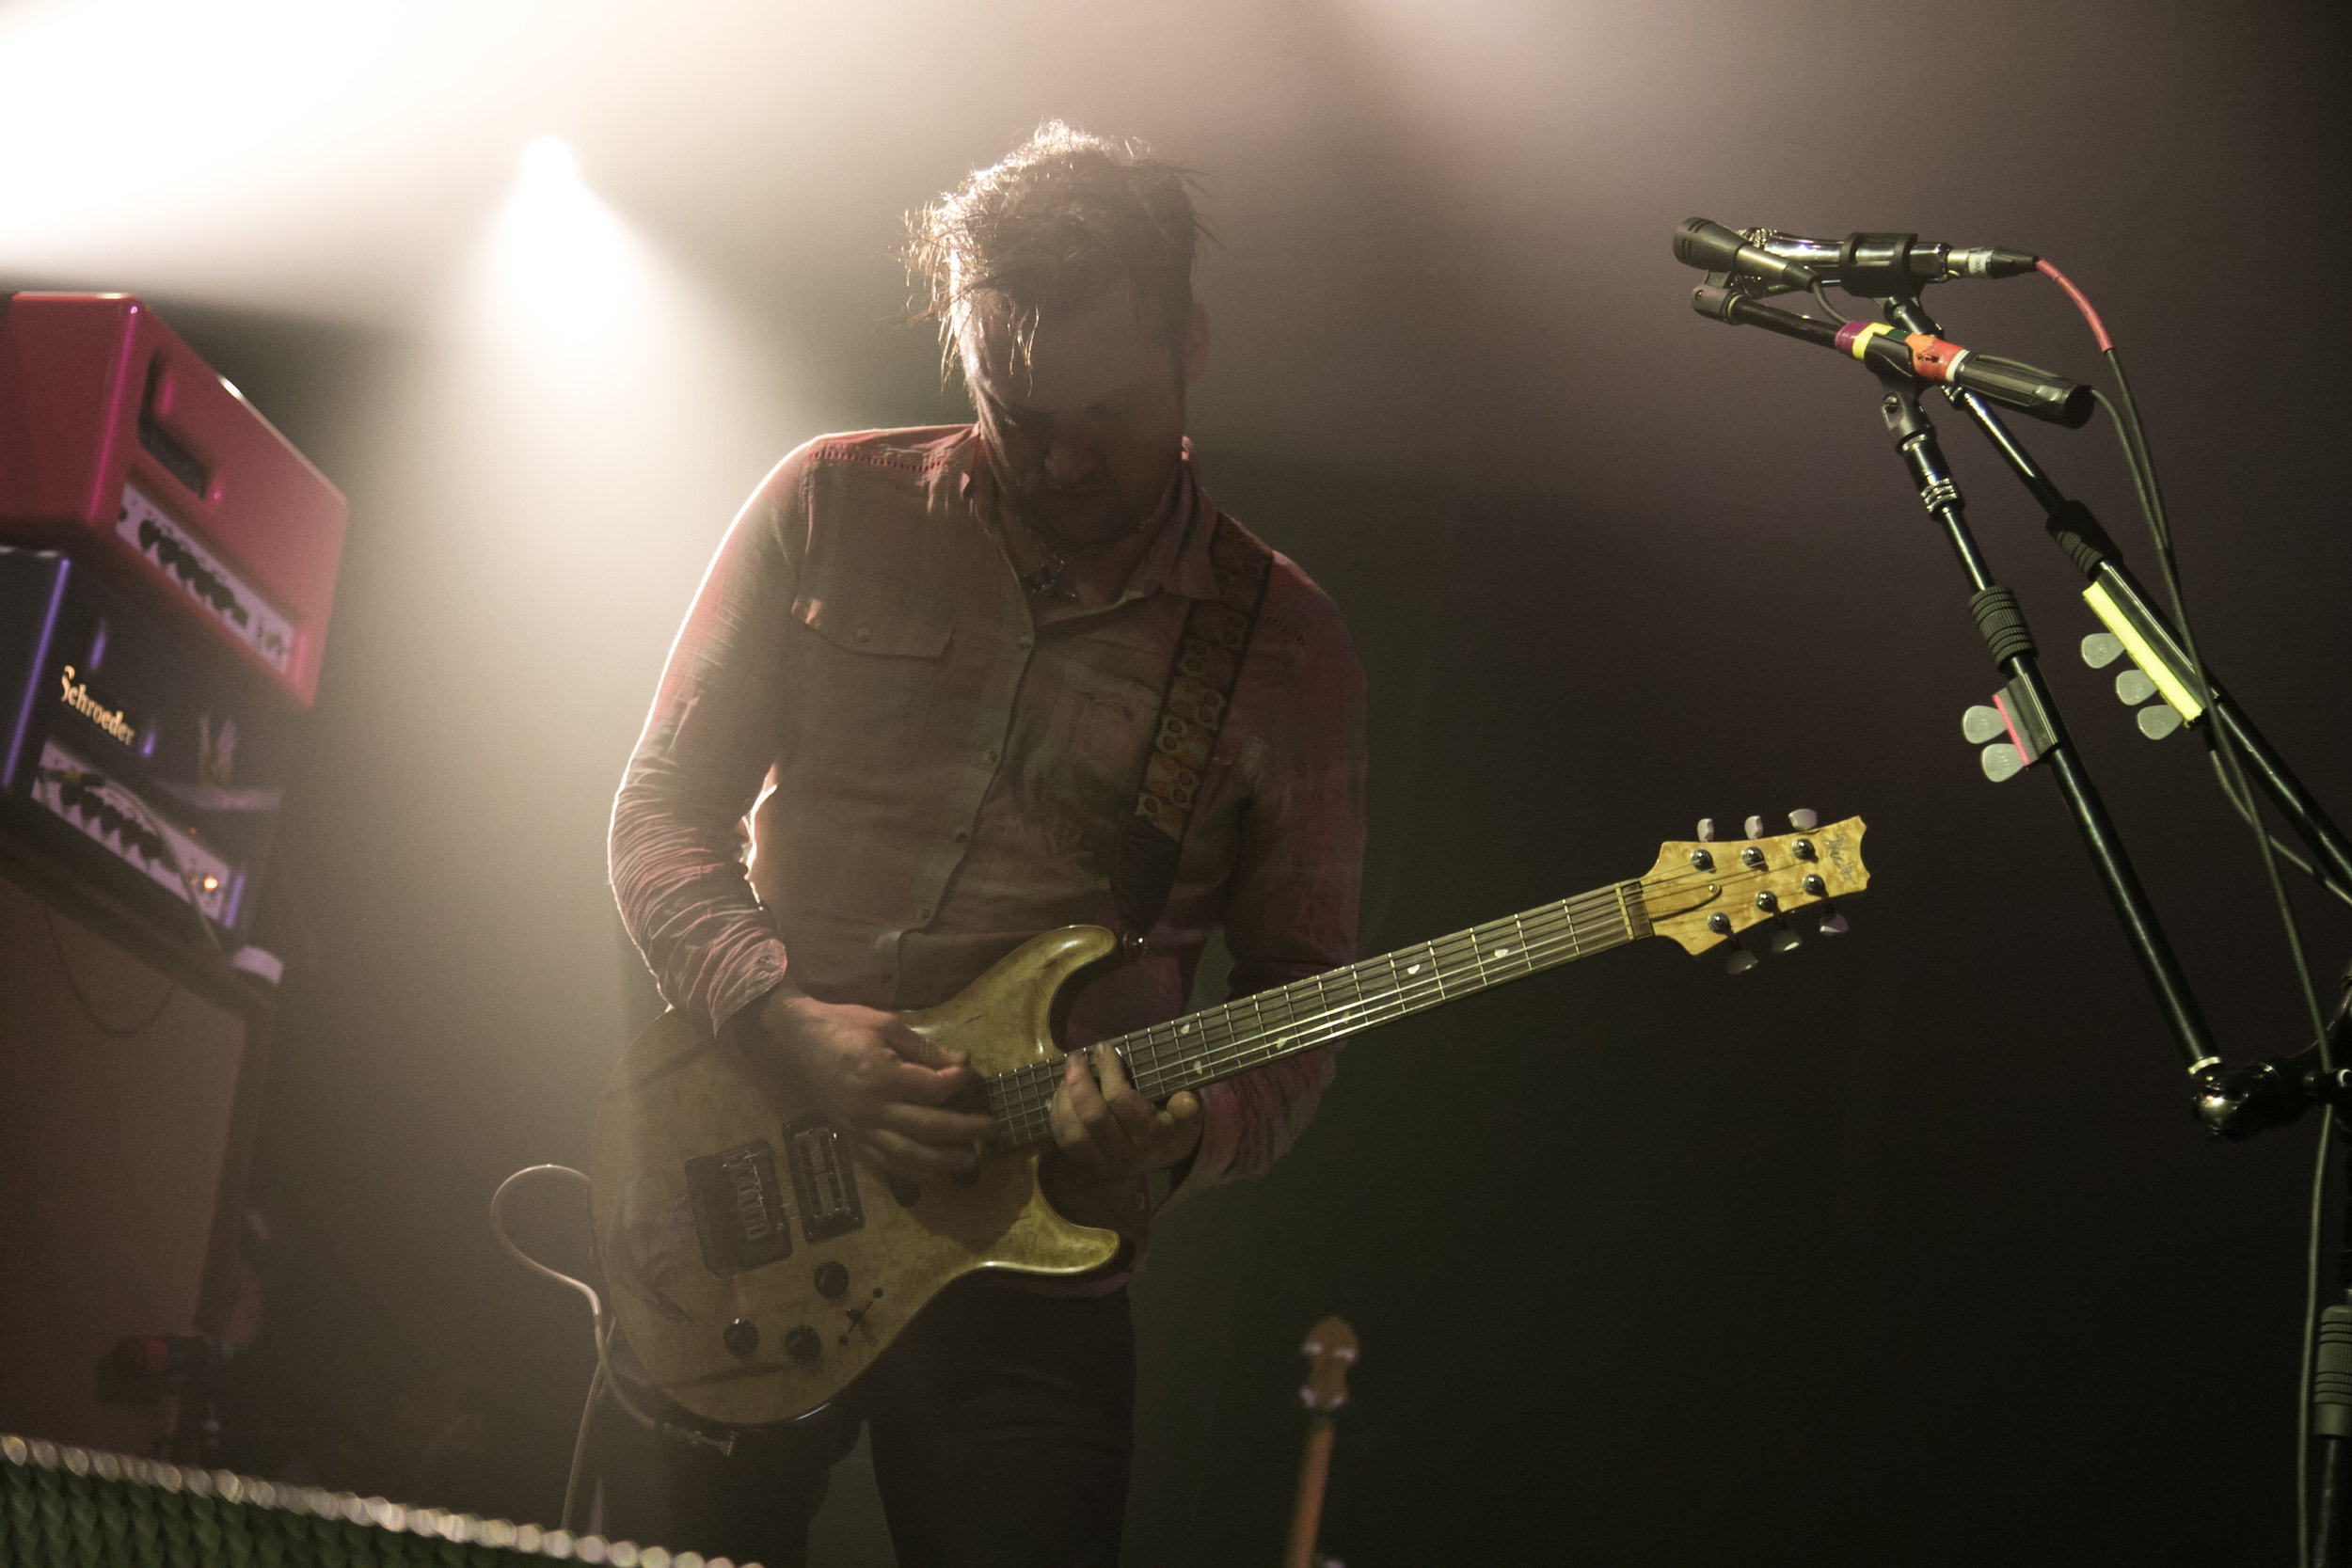 Poulos_Modest Mouse_4-28-18_Raleigh-3.JPG